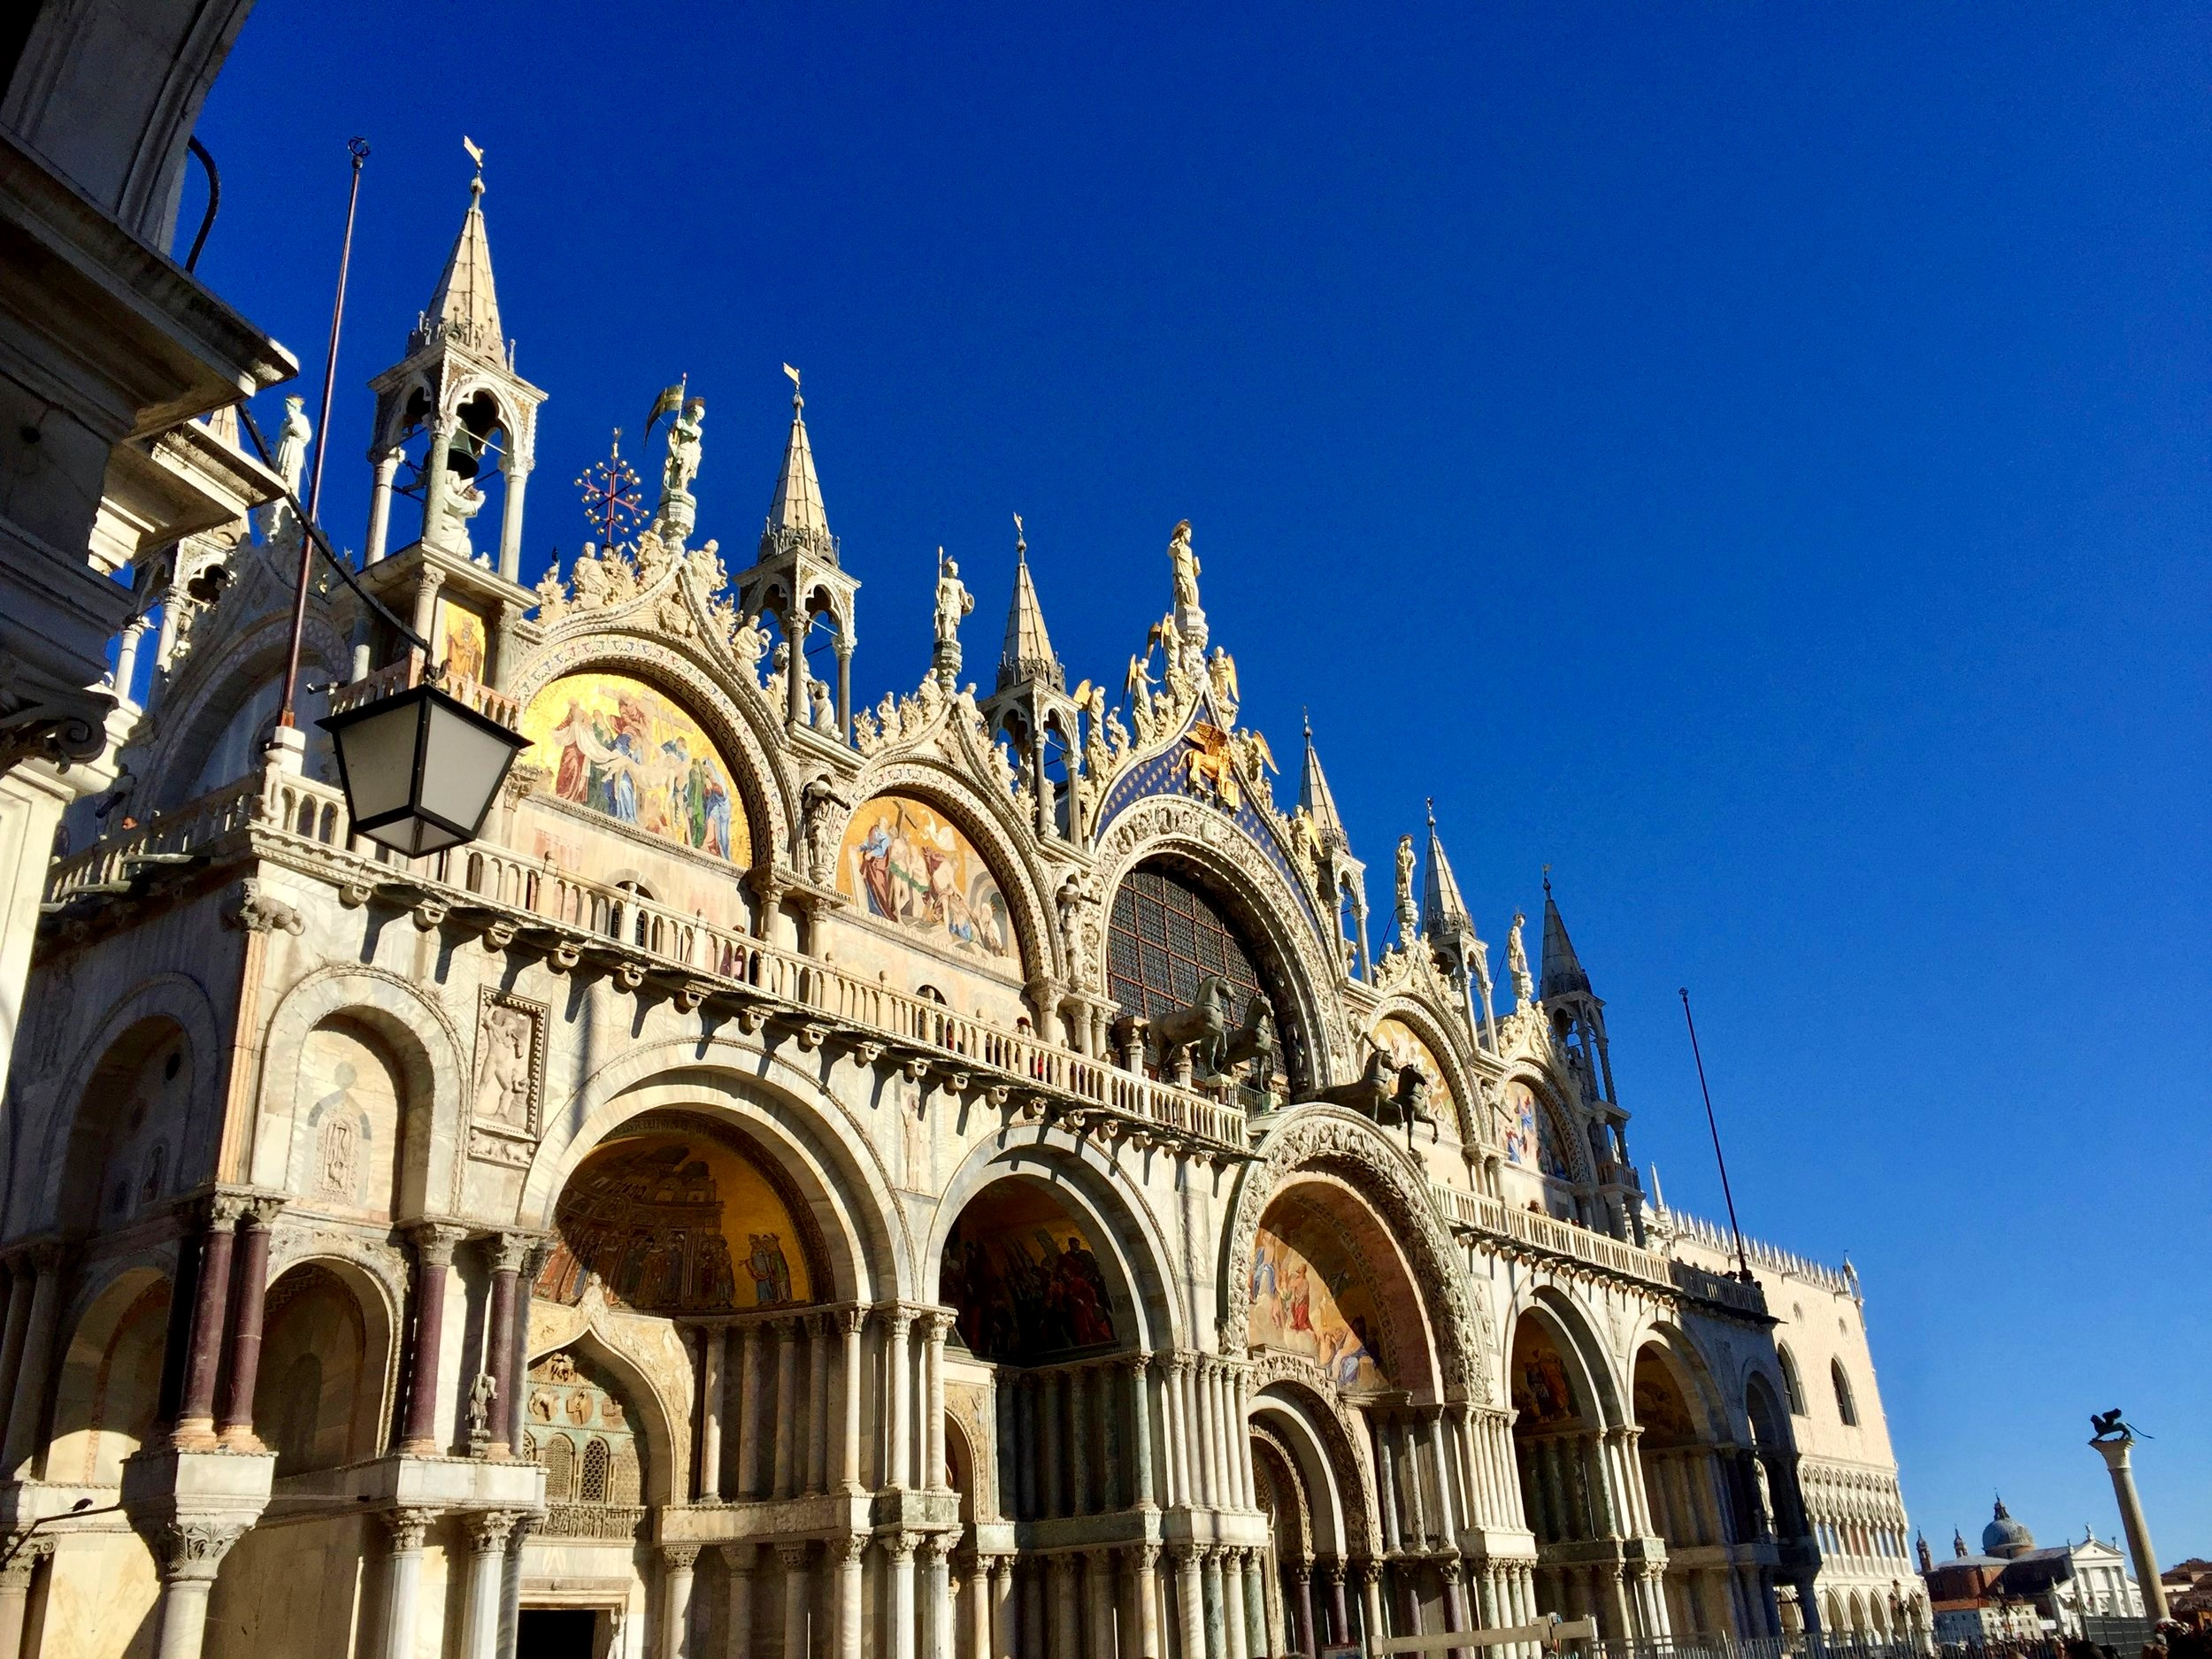 Saint Mark's Basilica and Square - San Marco